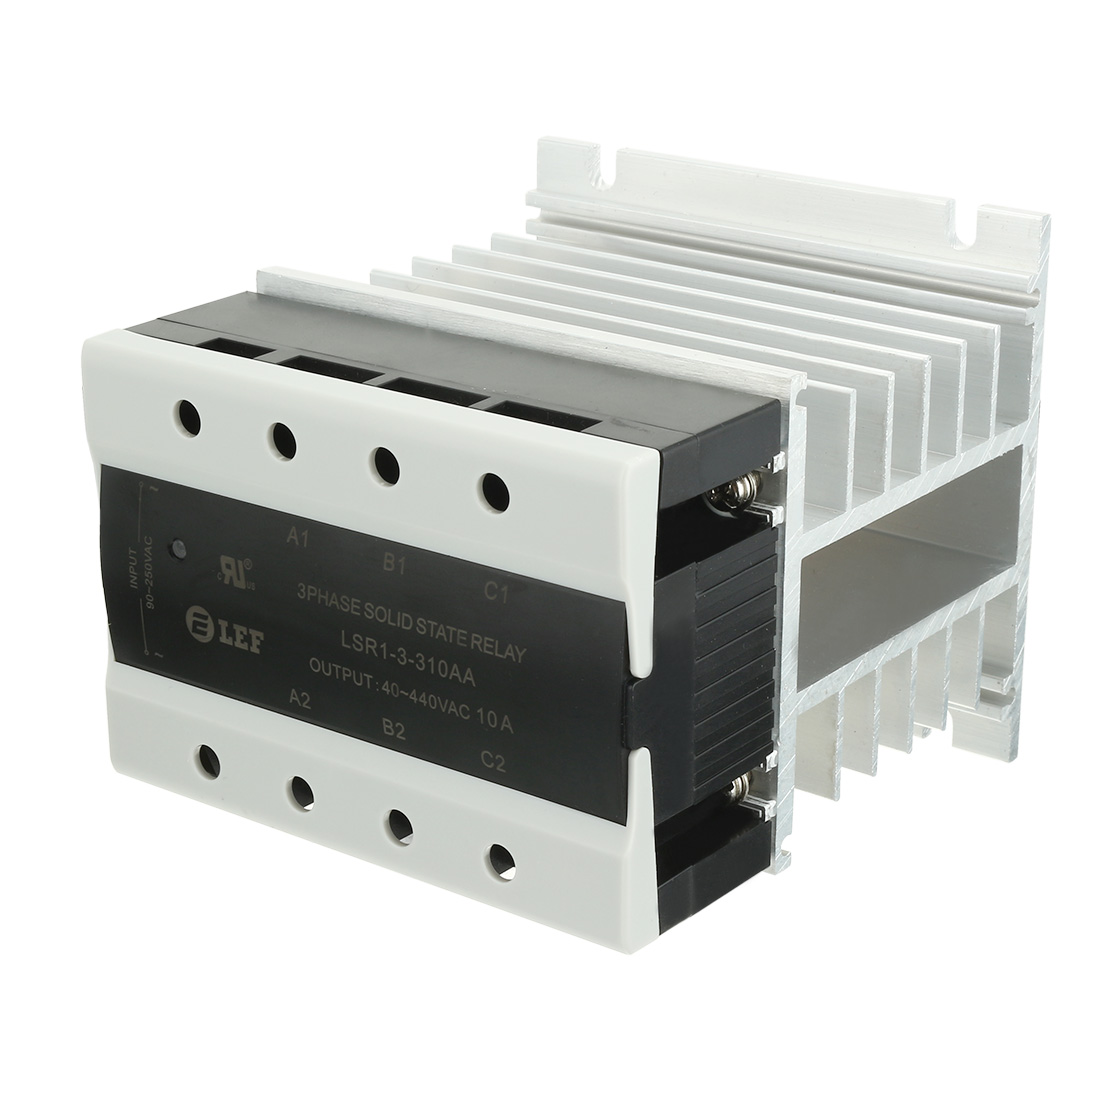 10A 90-250VAC to 40-440VAC SSR 3 Phase Solid State Relay + Heat Sink